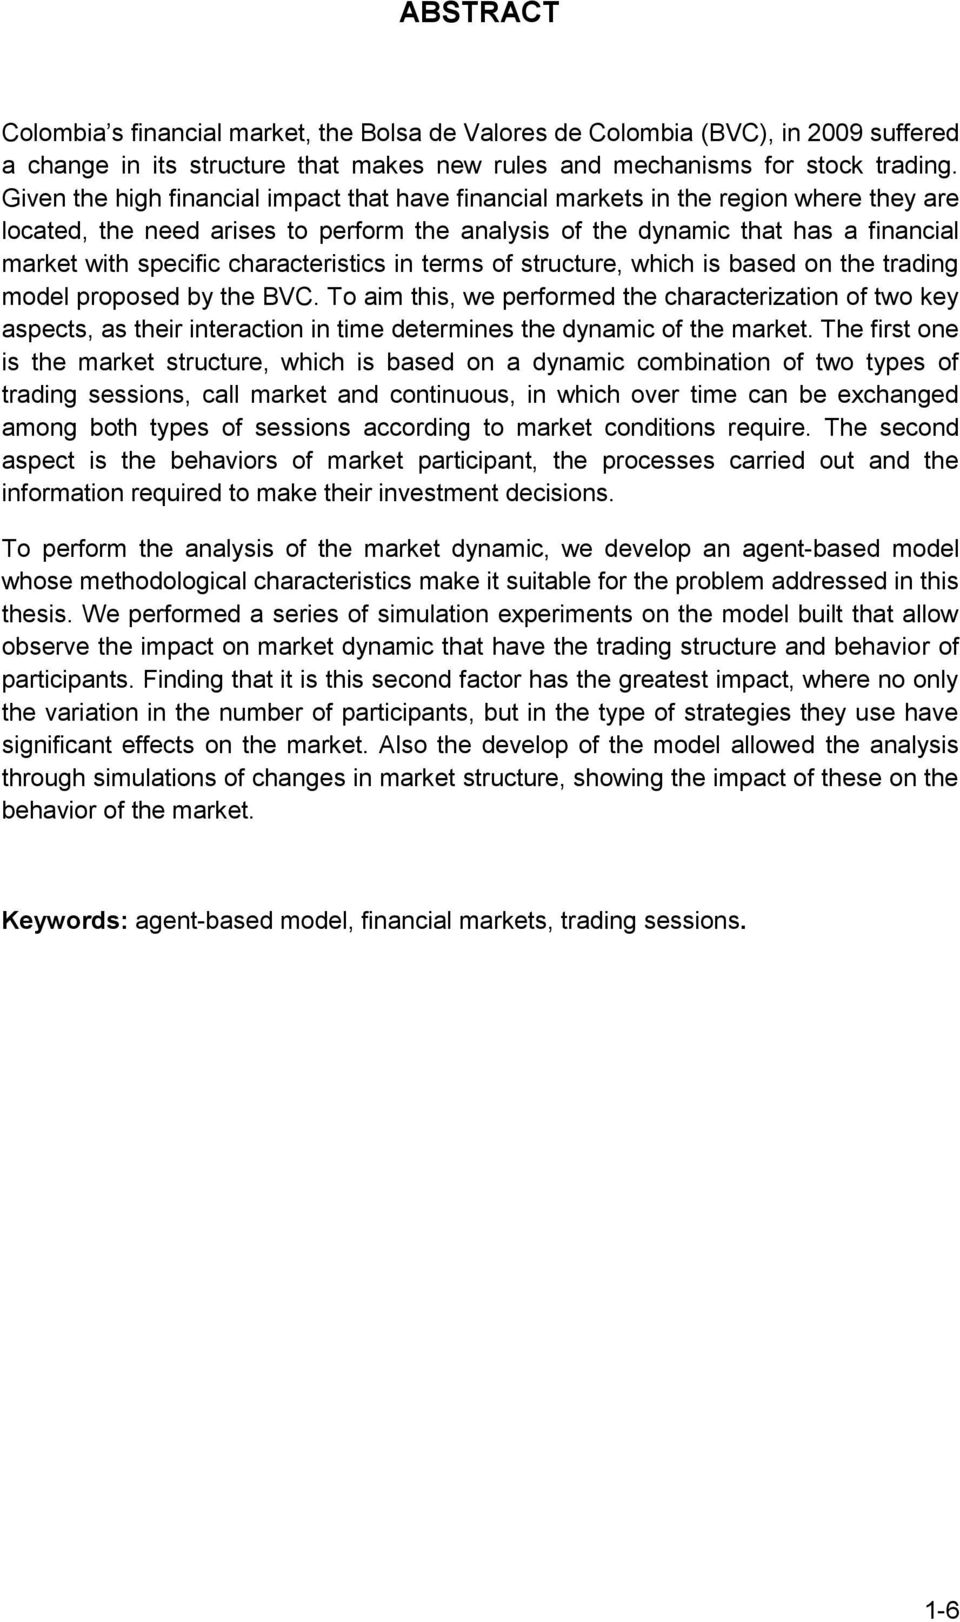 characteristics in terms of structure, which is based on the trading model proposed by the BVC.